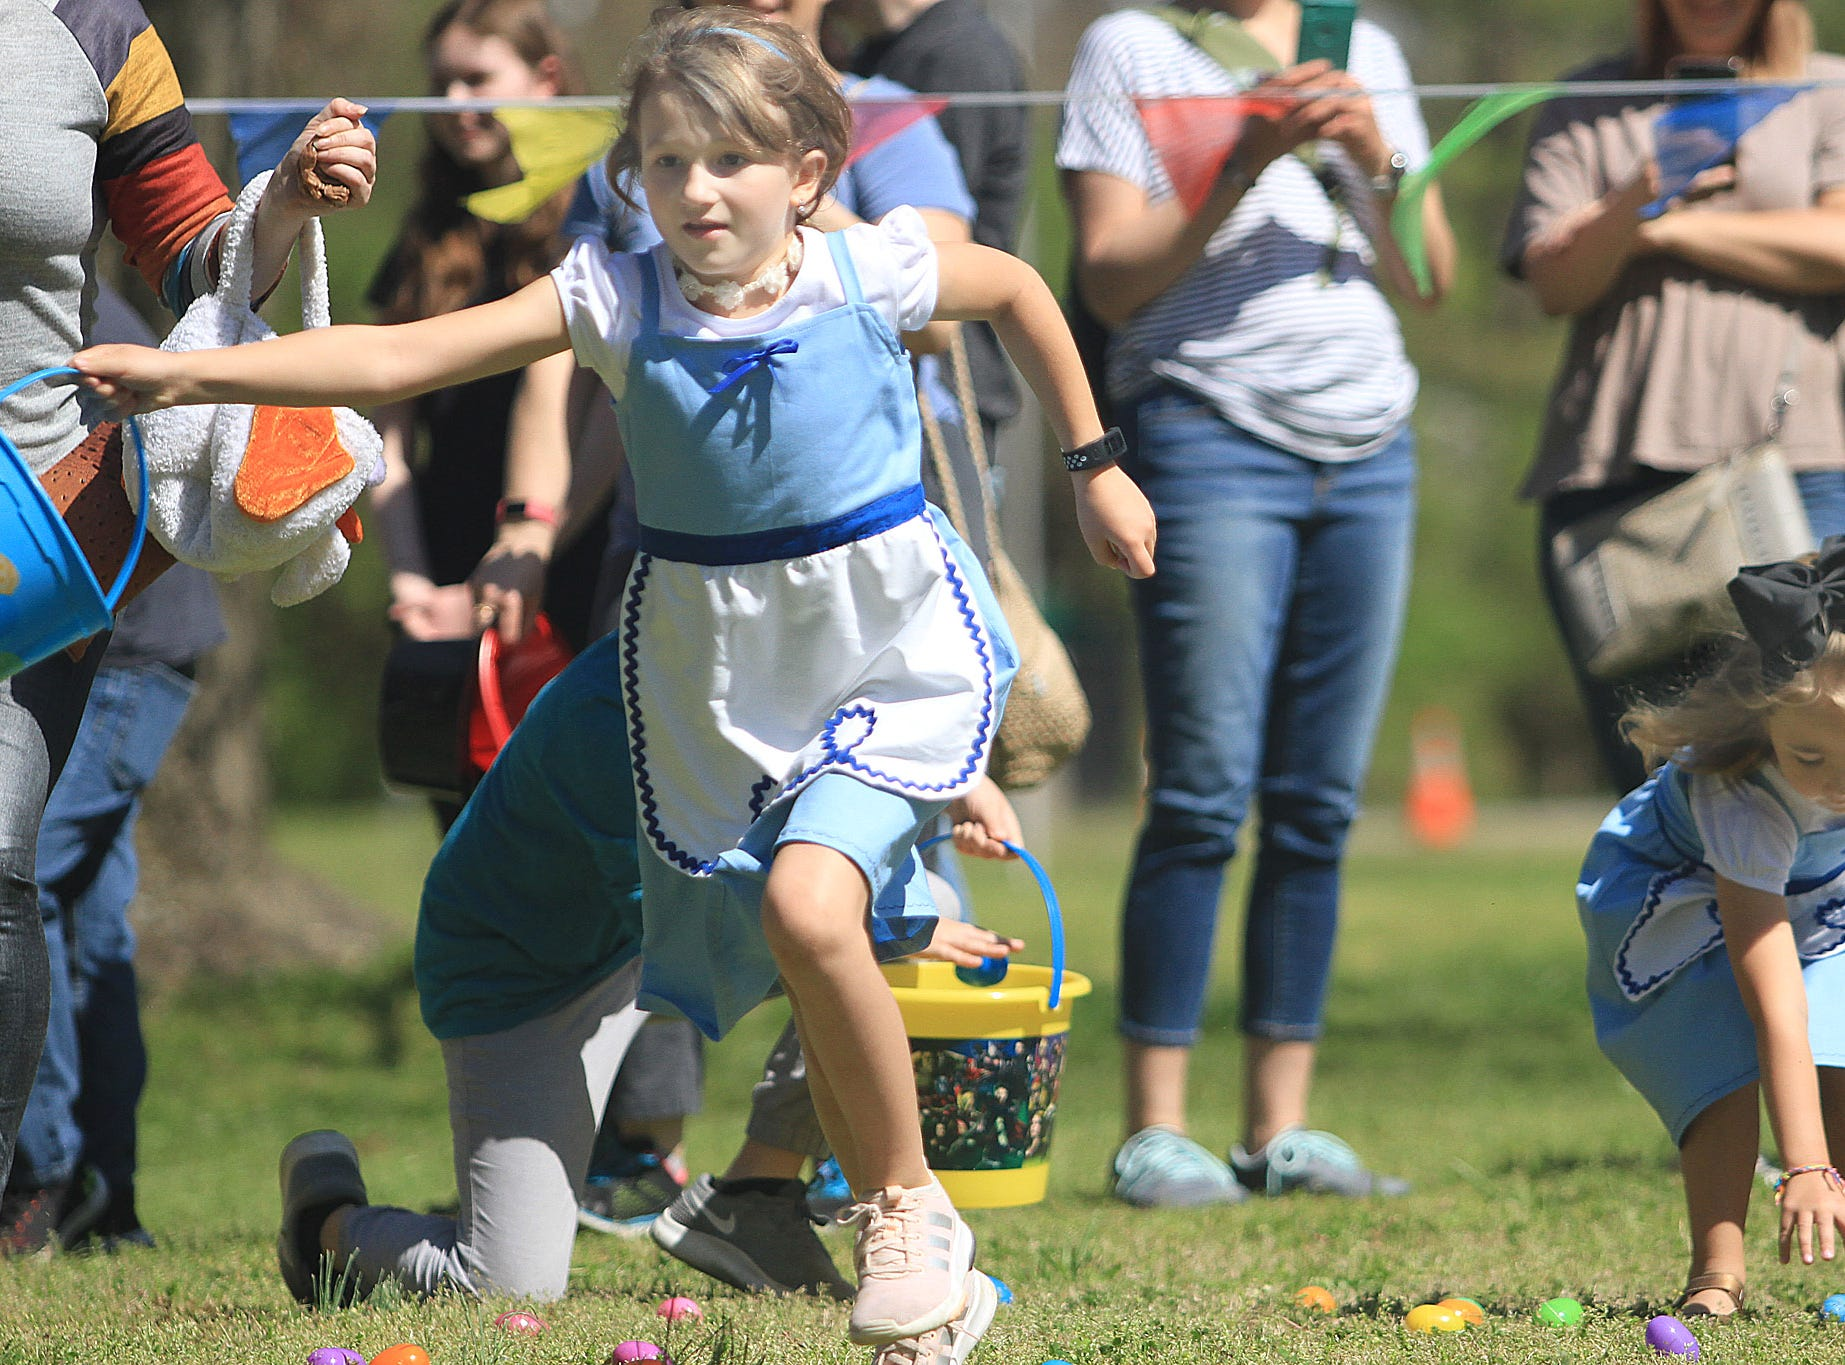 Piper Grigsby (7) busts out of the start of the Wonderland Egg Hunt at Rock Castle in Hendersonville, TN on Saturday, April 6, 2019.